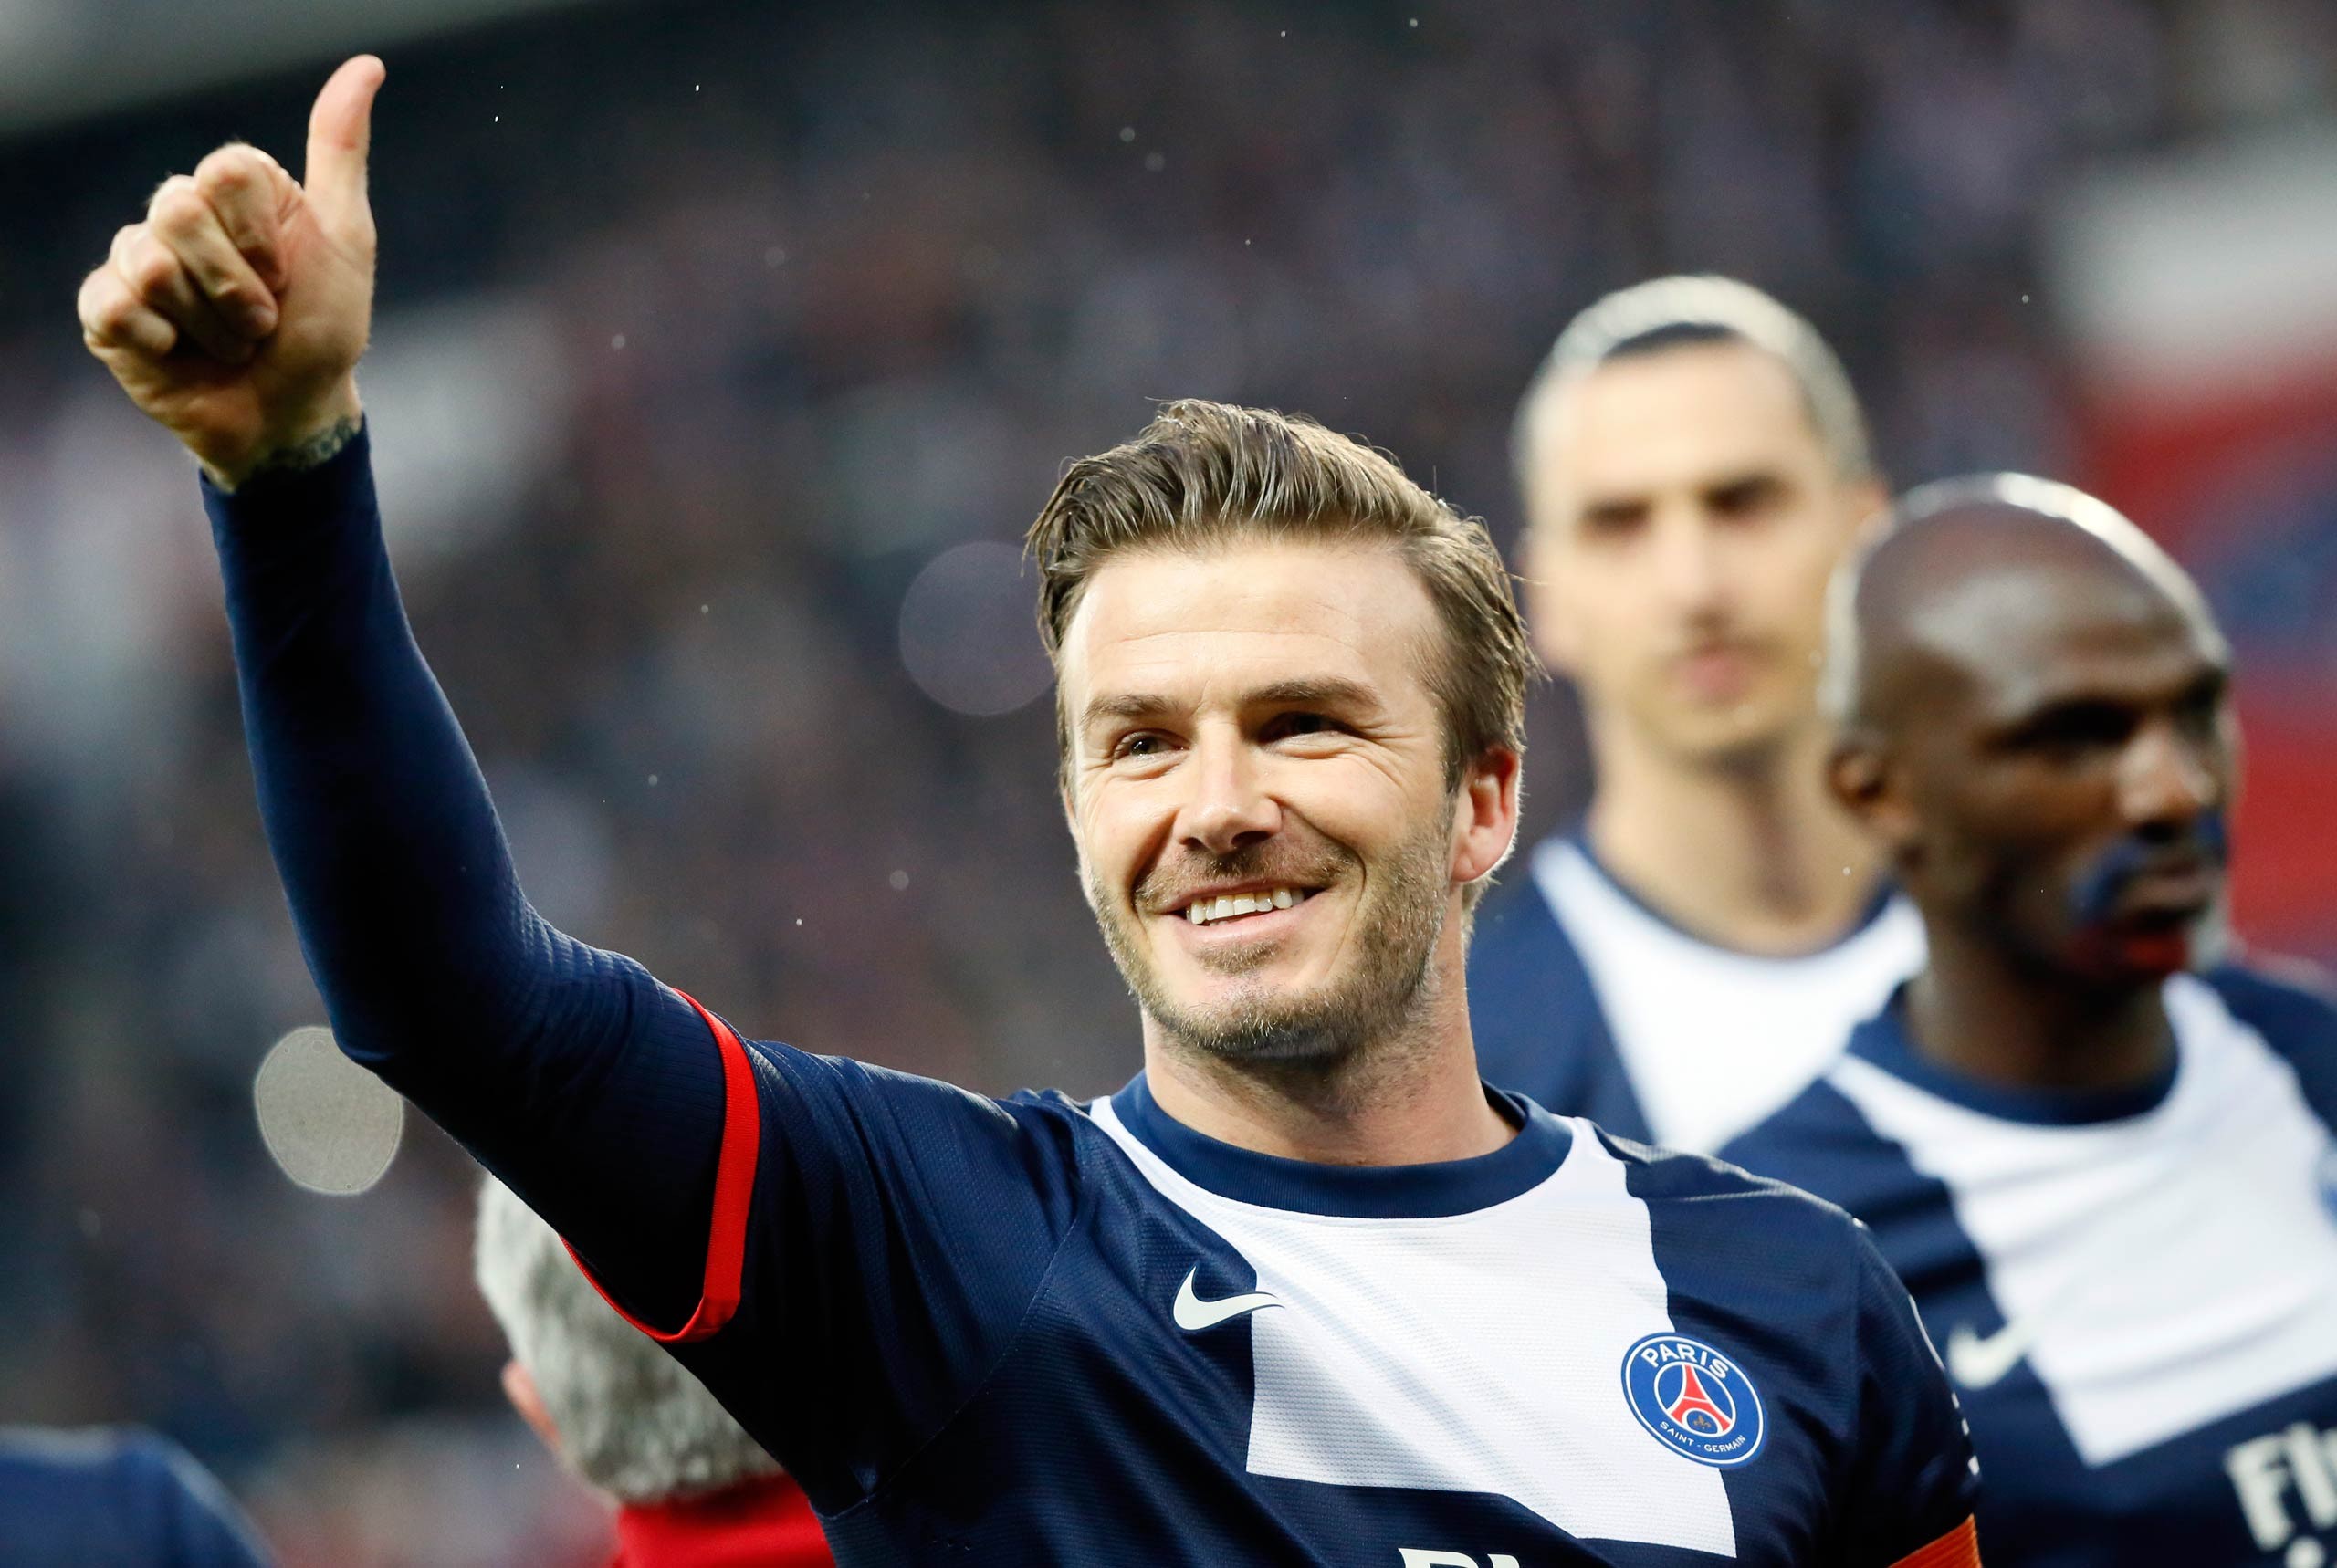 Paris Saint-Germain's English midfielder David Beckham is seen during his final soccer game, a French L1 soccer match between Paris St. Germain and Brest at Parc des Princes stadium in Paris in 2013.